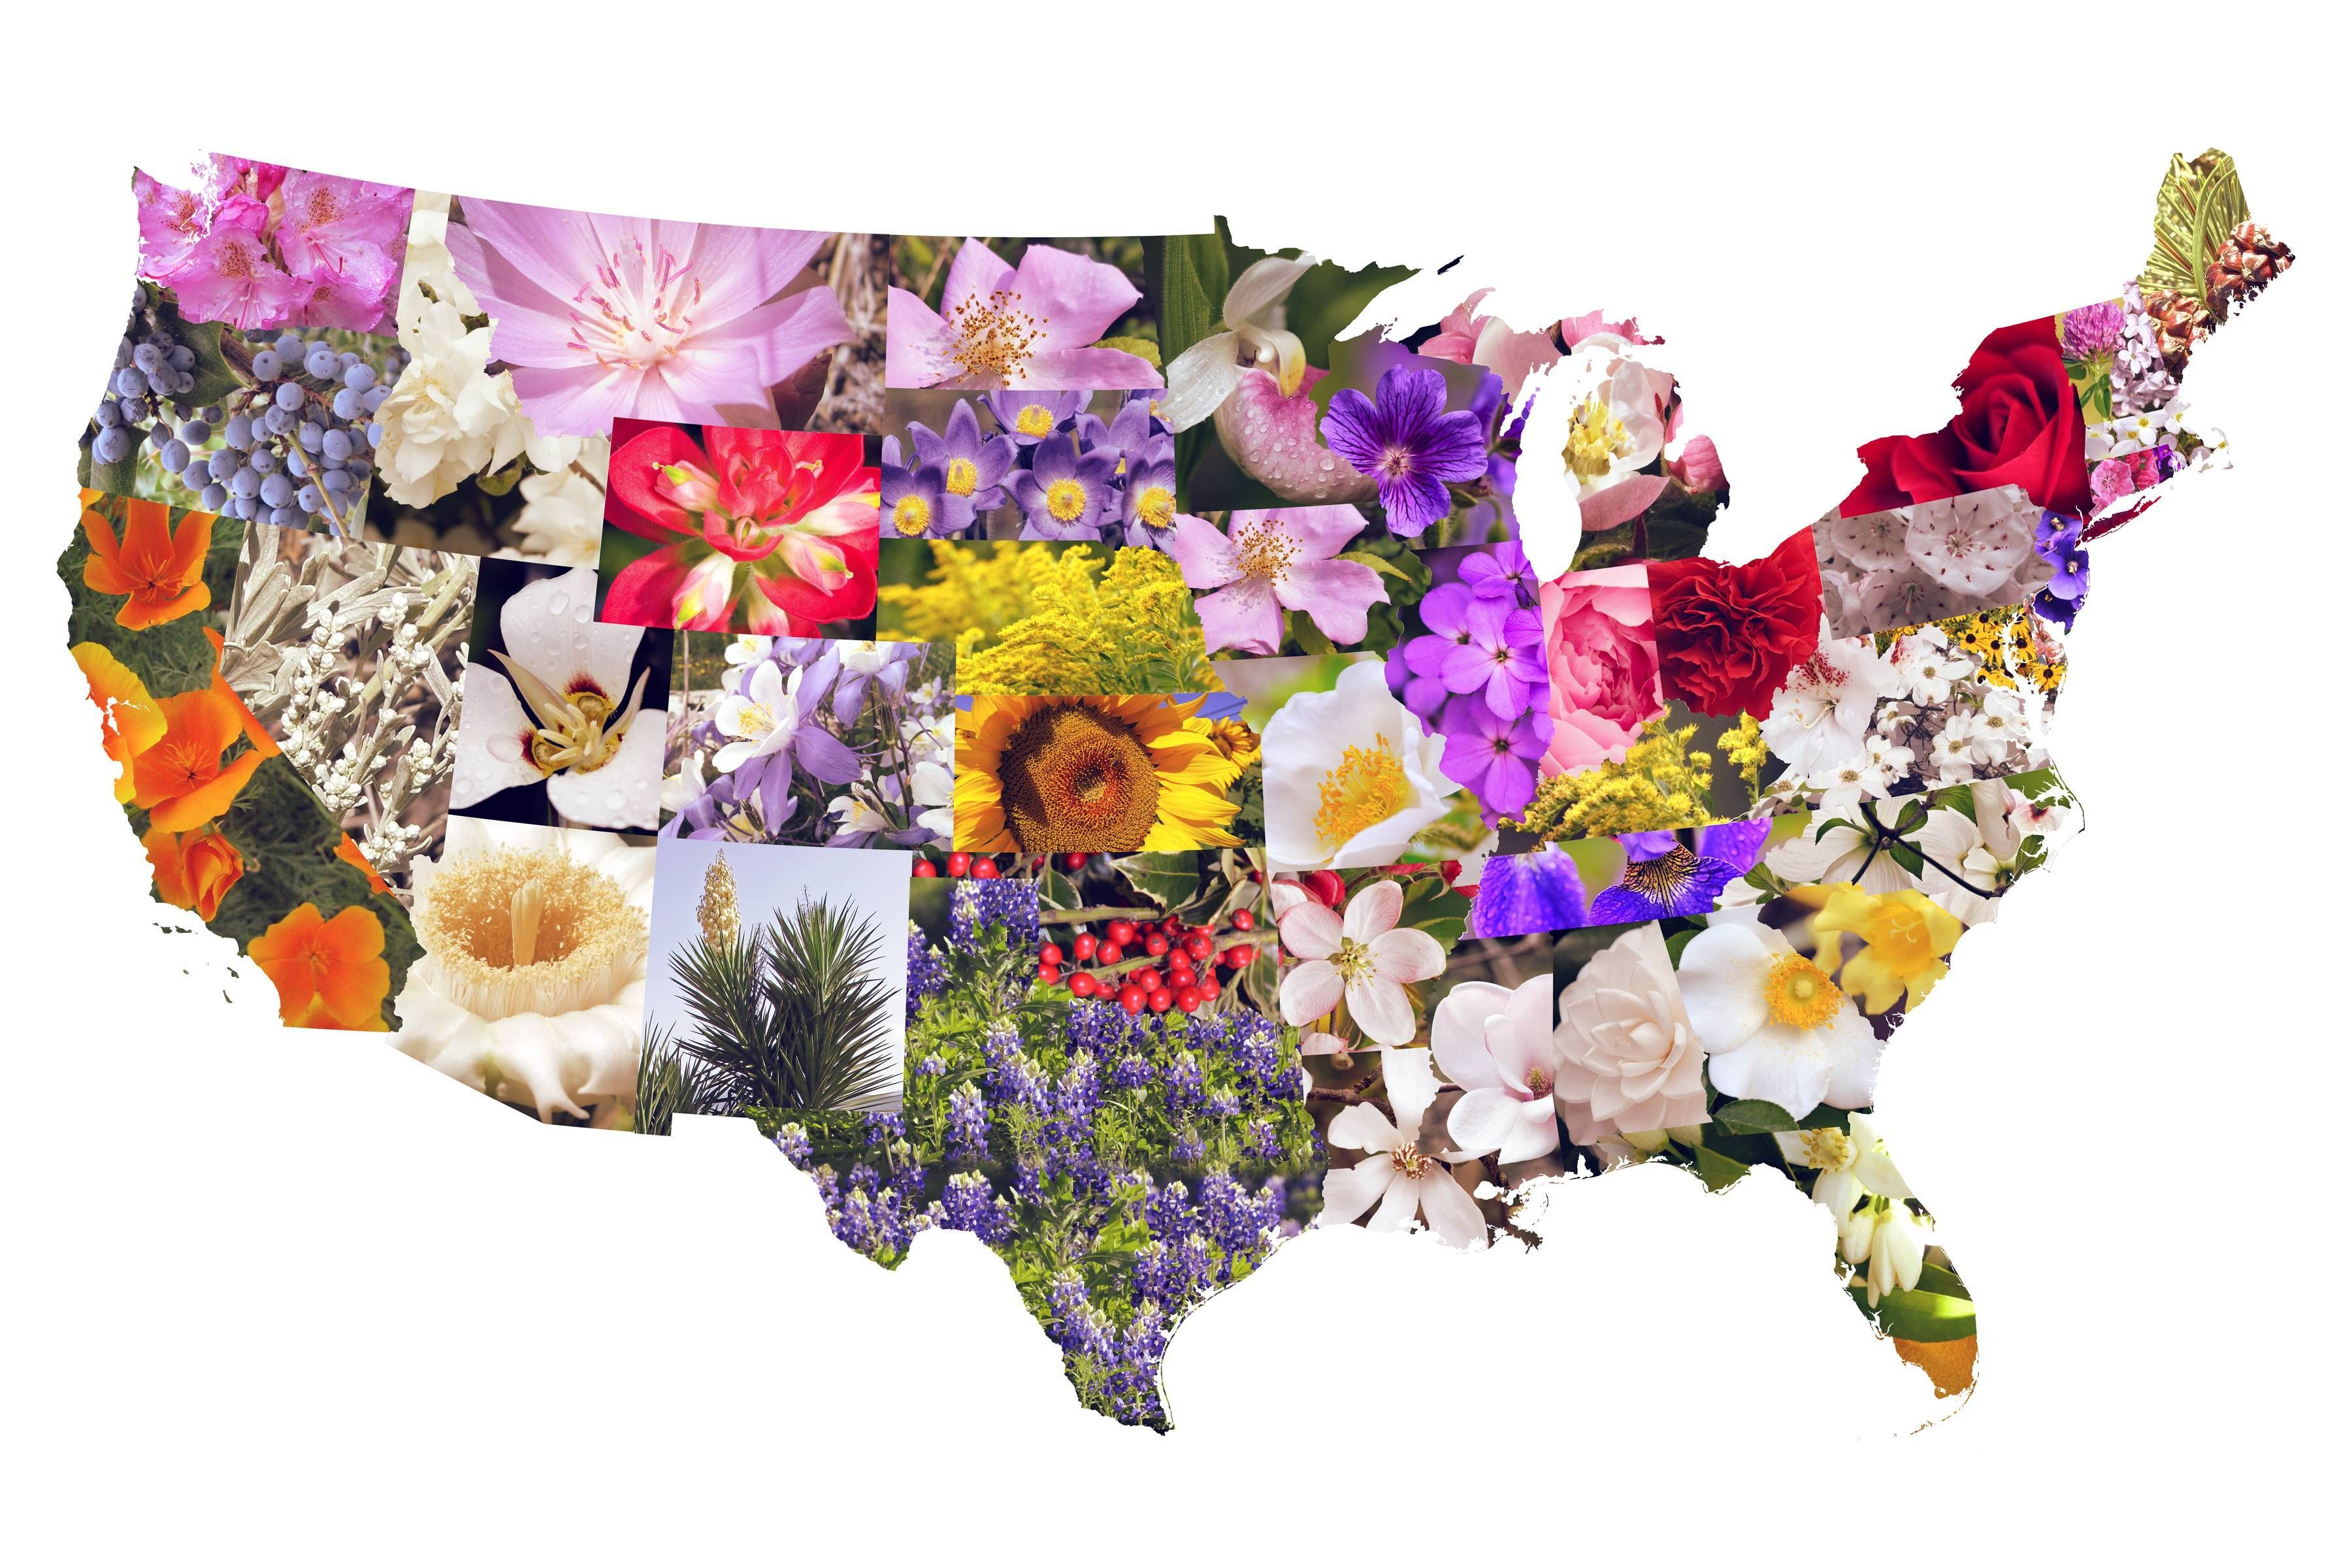 Man In The United States Map.State Flowers Of The Contiguous United States North America United